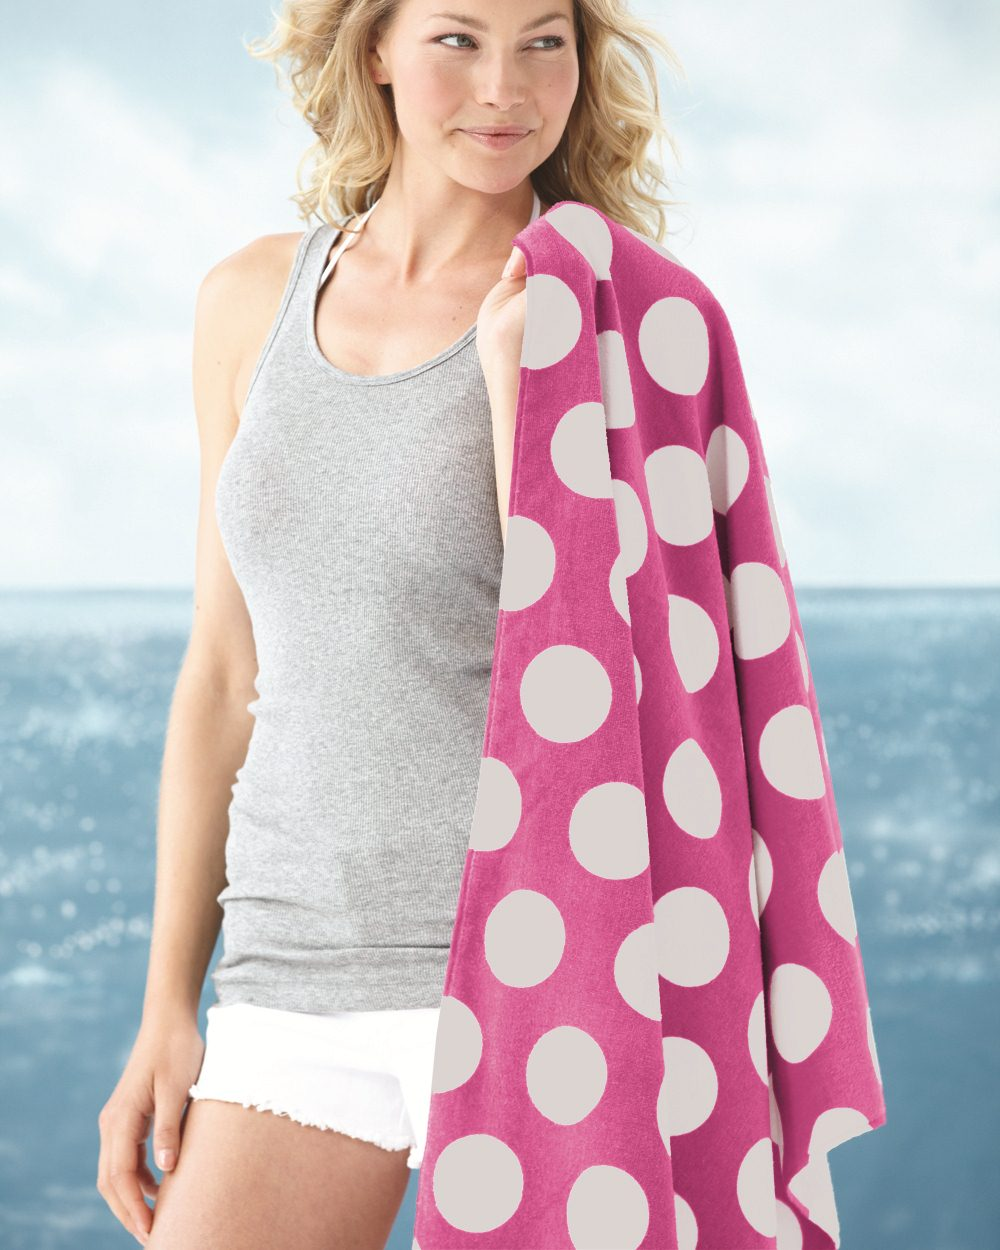 Carmel Towel Company 3060P - Polka Dot Velour Beach Towel